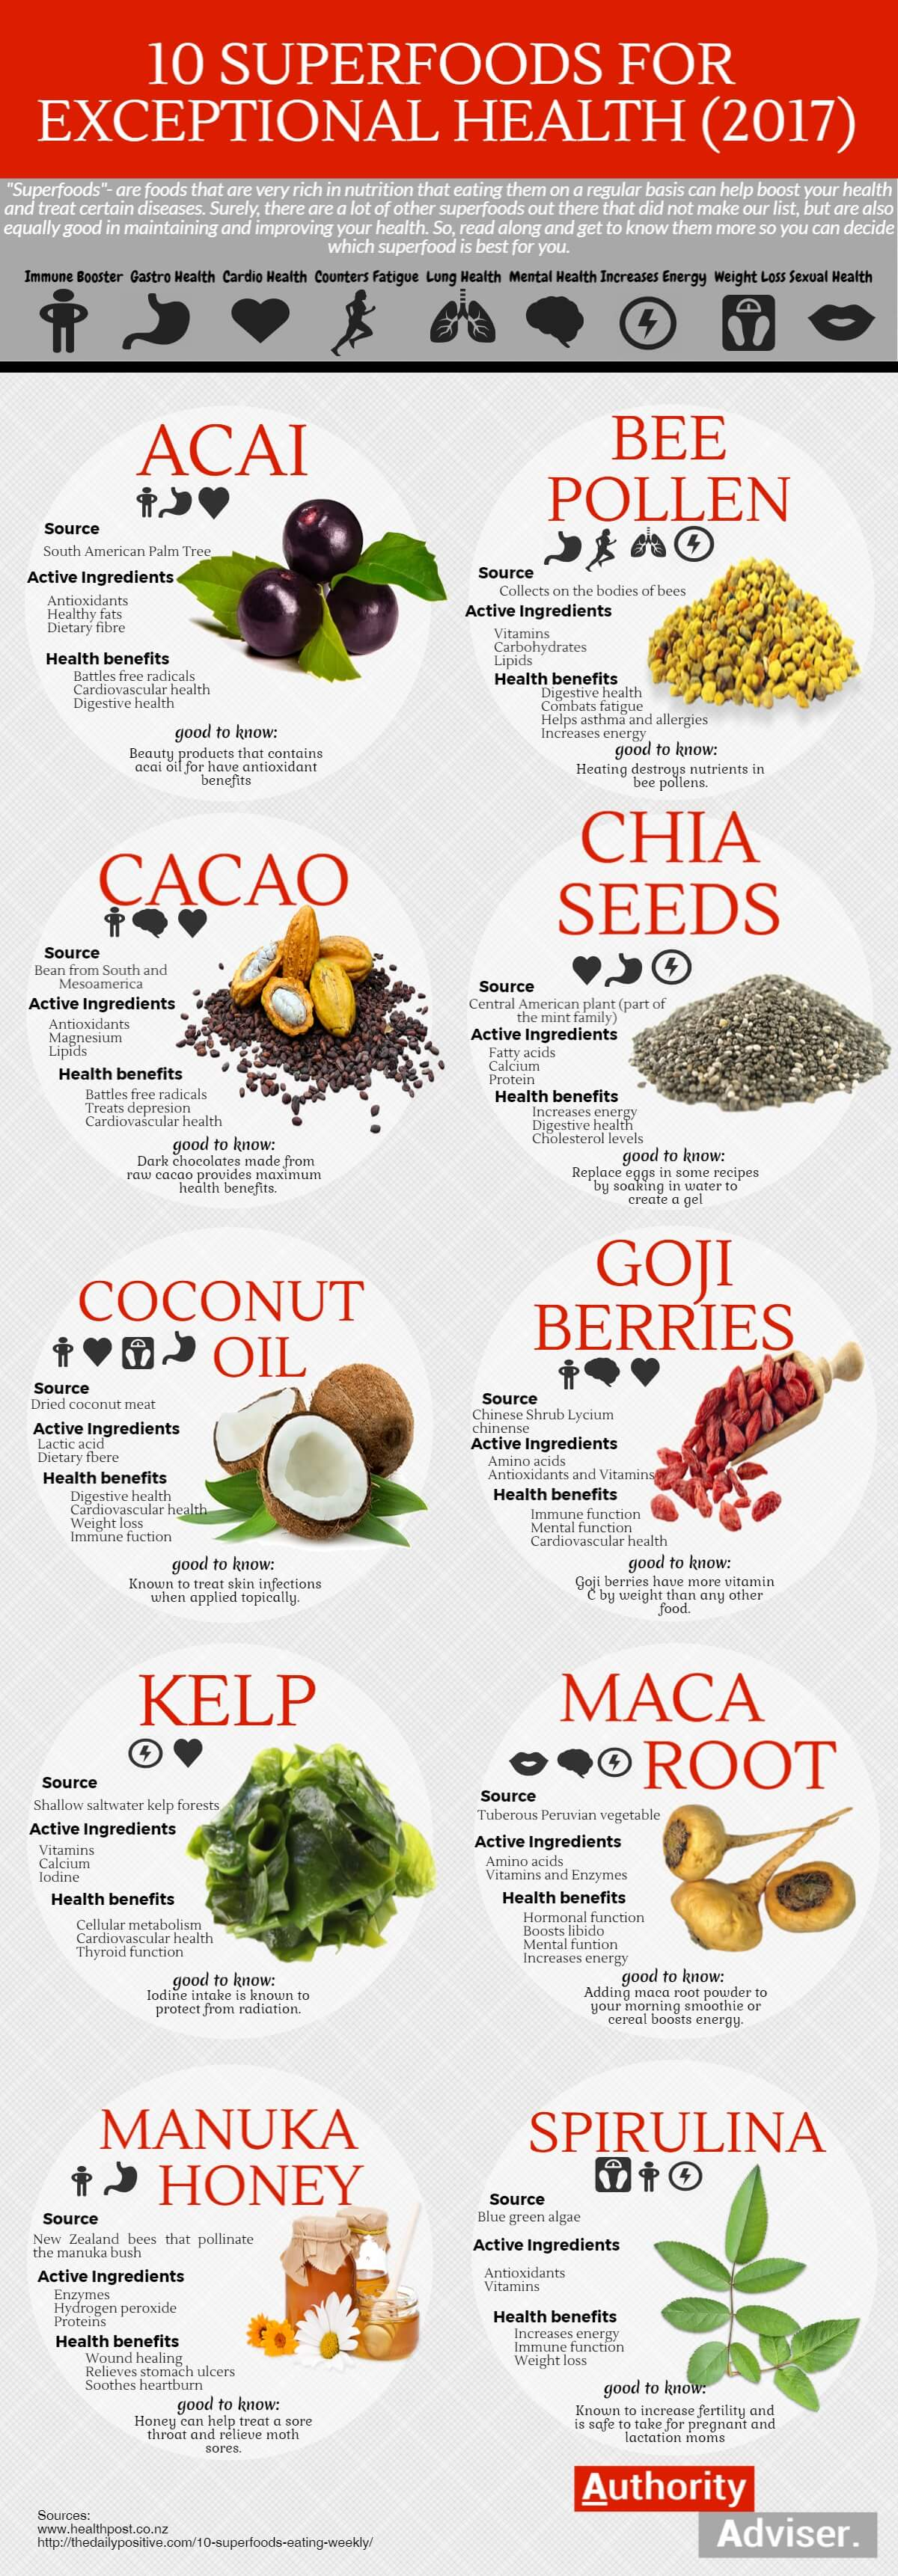 10-Superfoods-for-Exceptional-Health-2017a-infographic-lkrllc